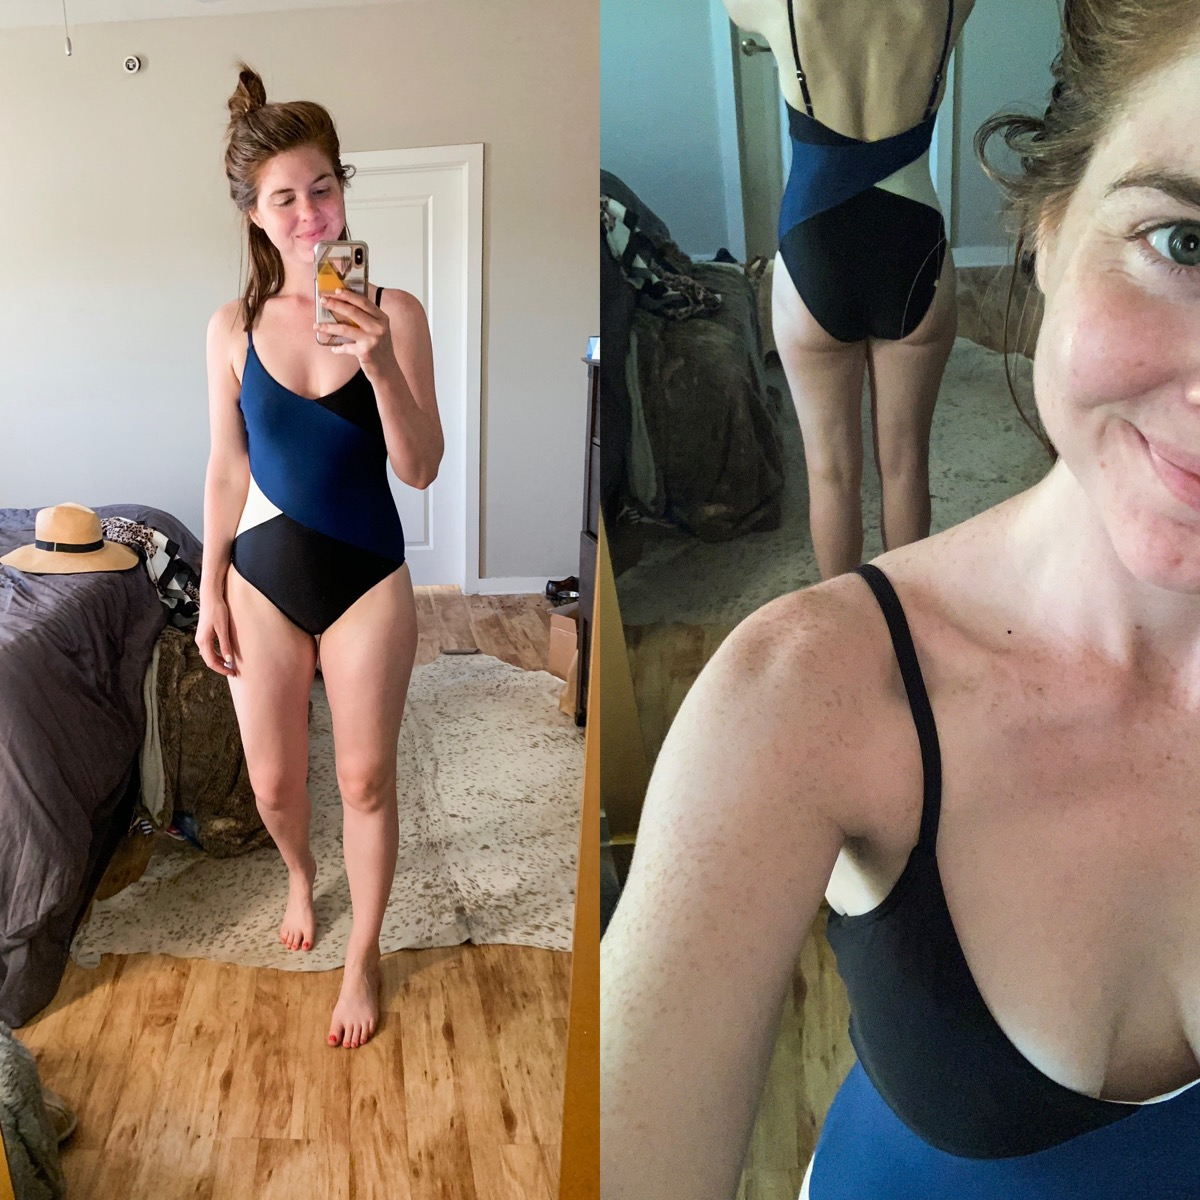 the marina, are summersalt swimsuits worth the price, honest summersalt reviews, designer swimwear, swimwear for every body type,  cute one piece swimsuits, plus size swimwear